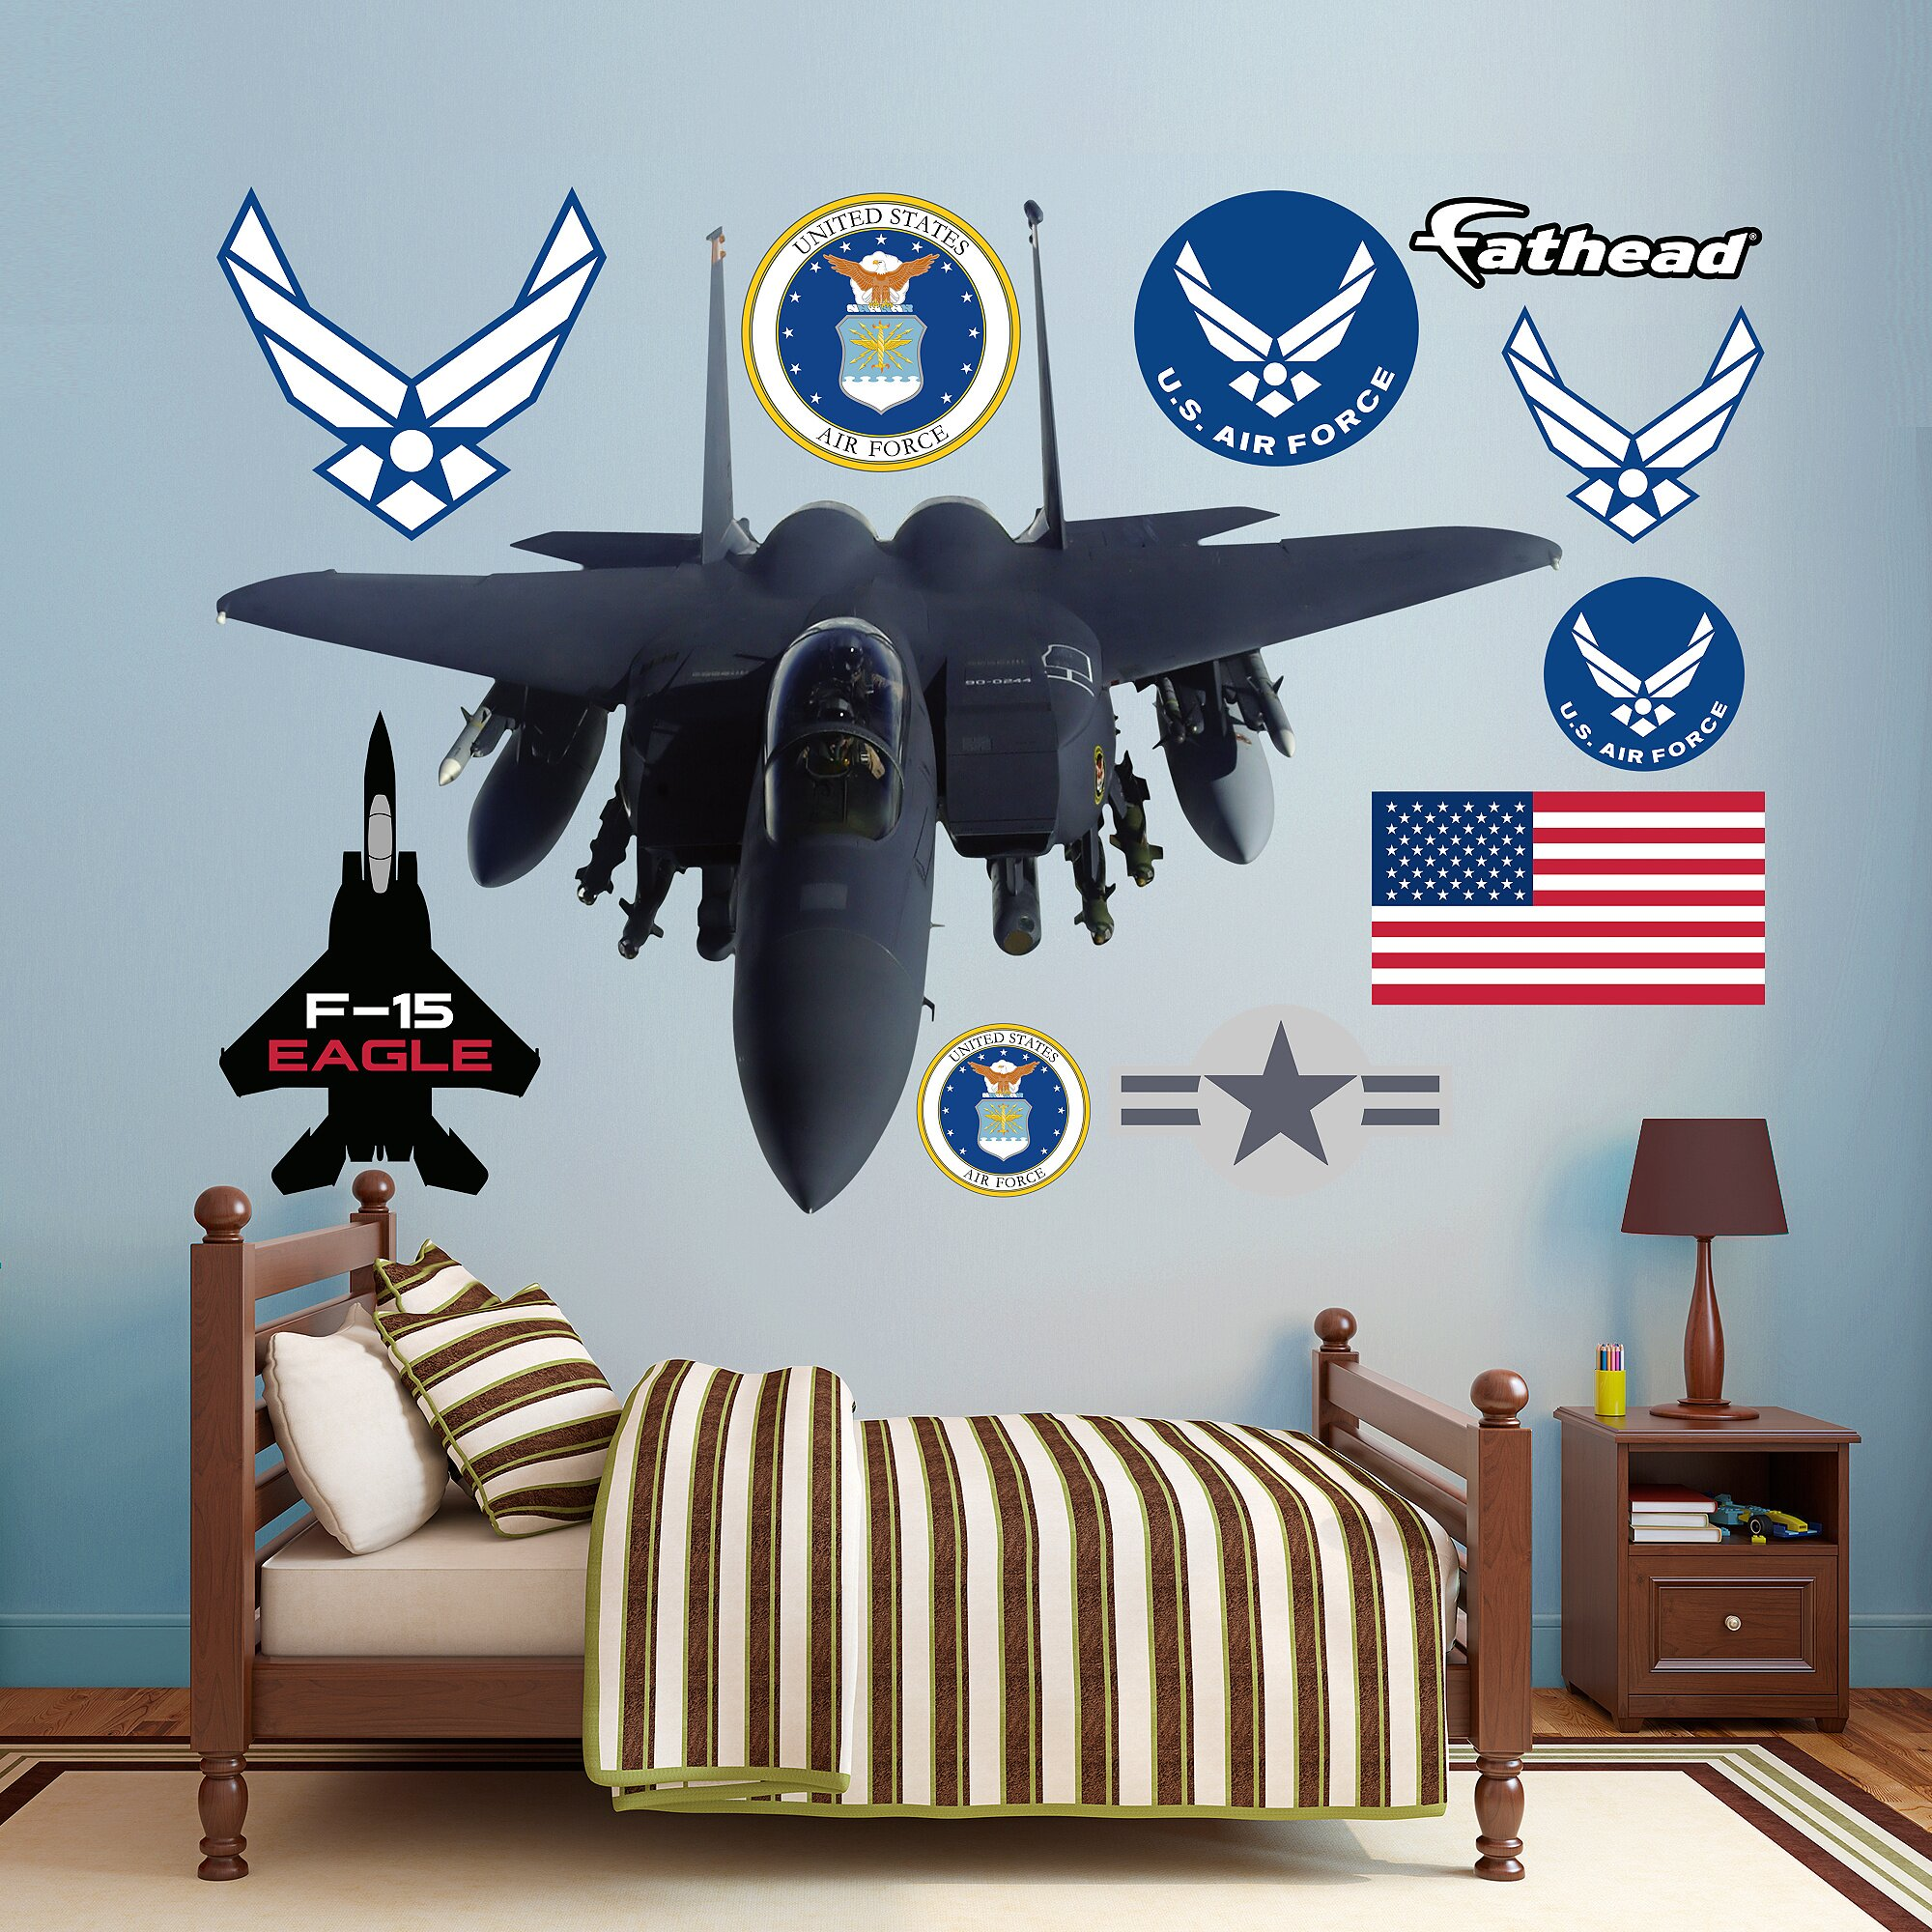 Fathead United States Air Force F-15 Eagle Peel and Stick Wall Decal | Wayfair.ca